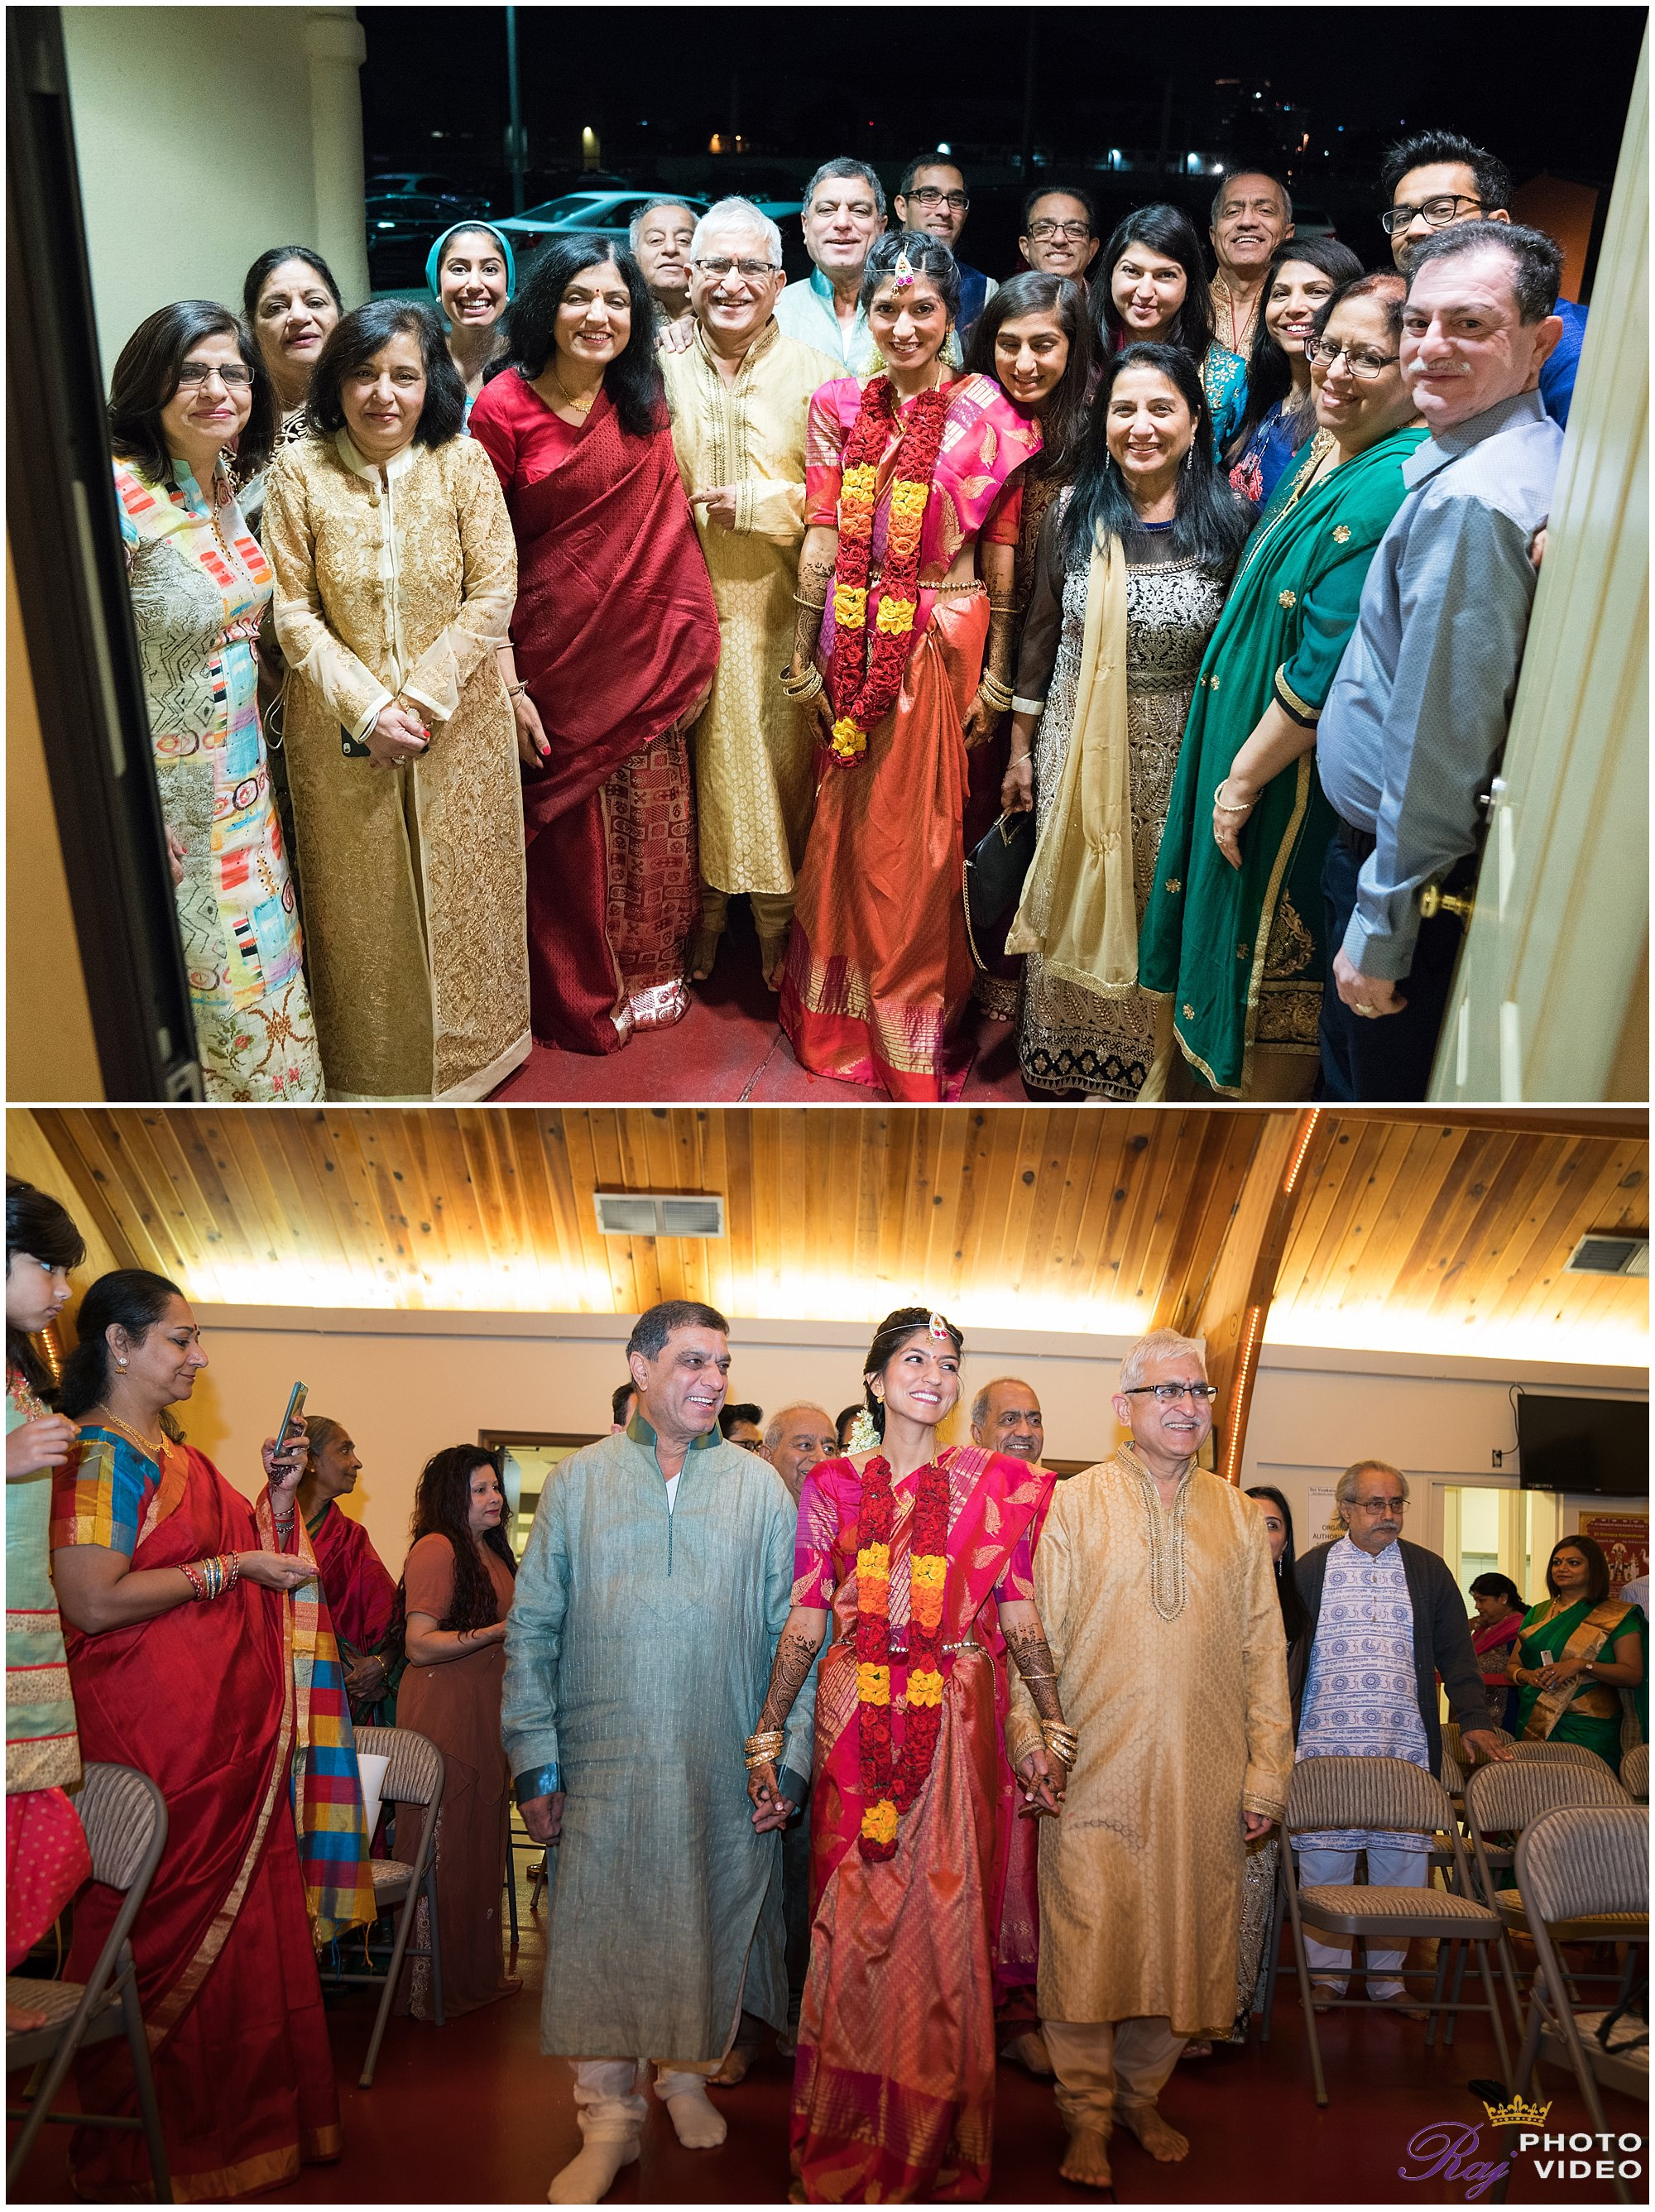 Sri_Venkata_Krishna_Kshetra_Temple_Tempe_Arizona_Indian_Wedding_Sapna_Shyam-8.jpg